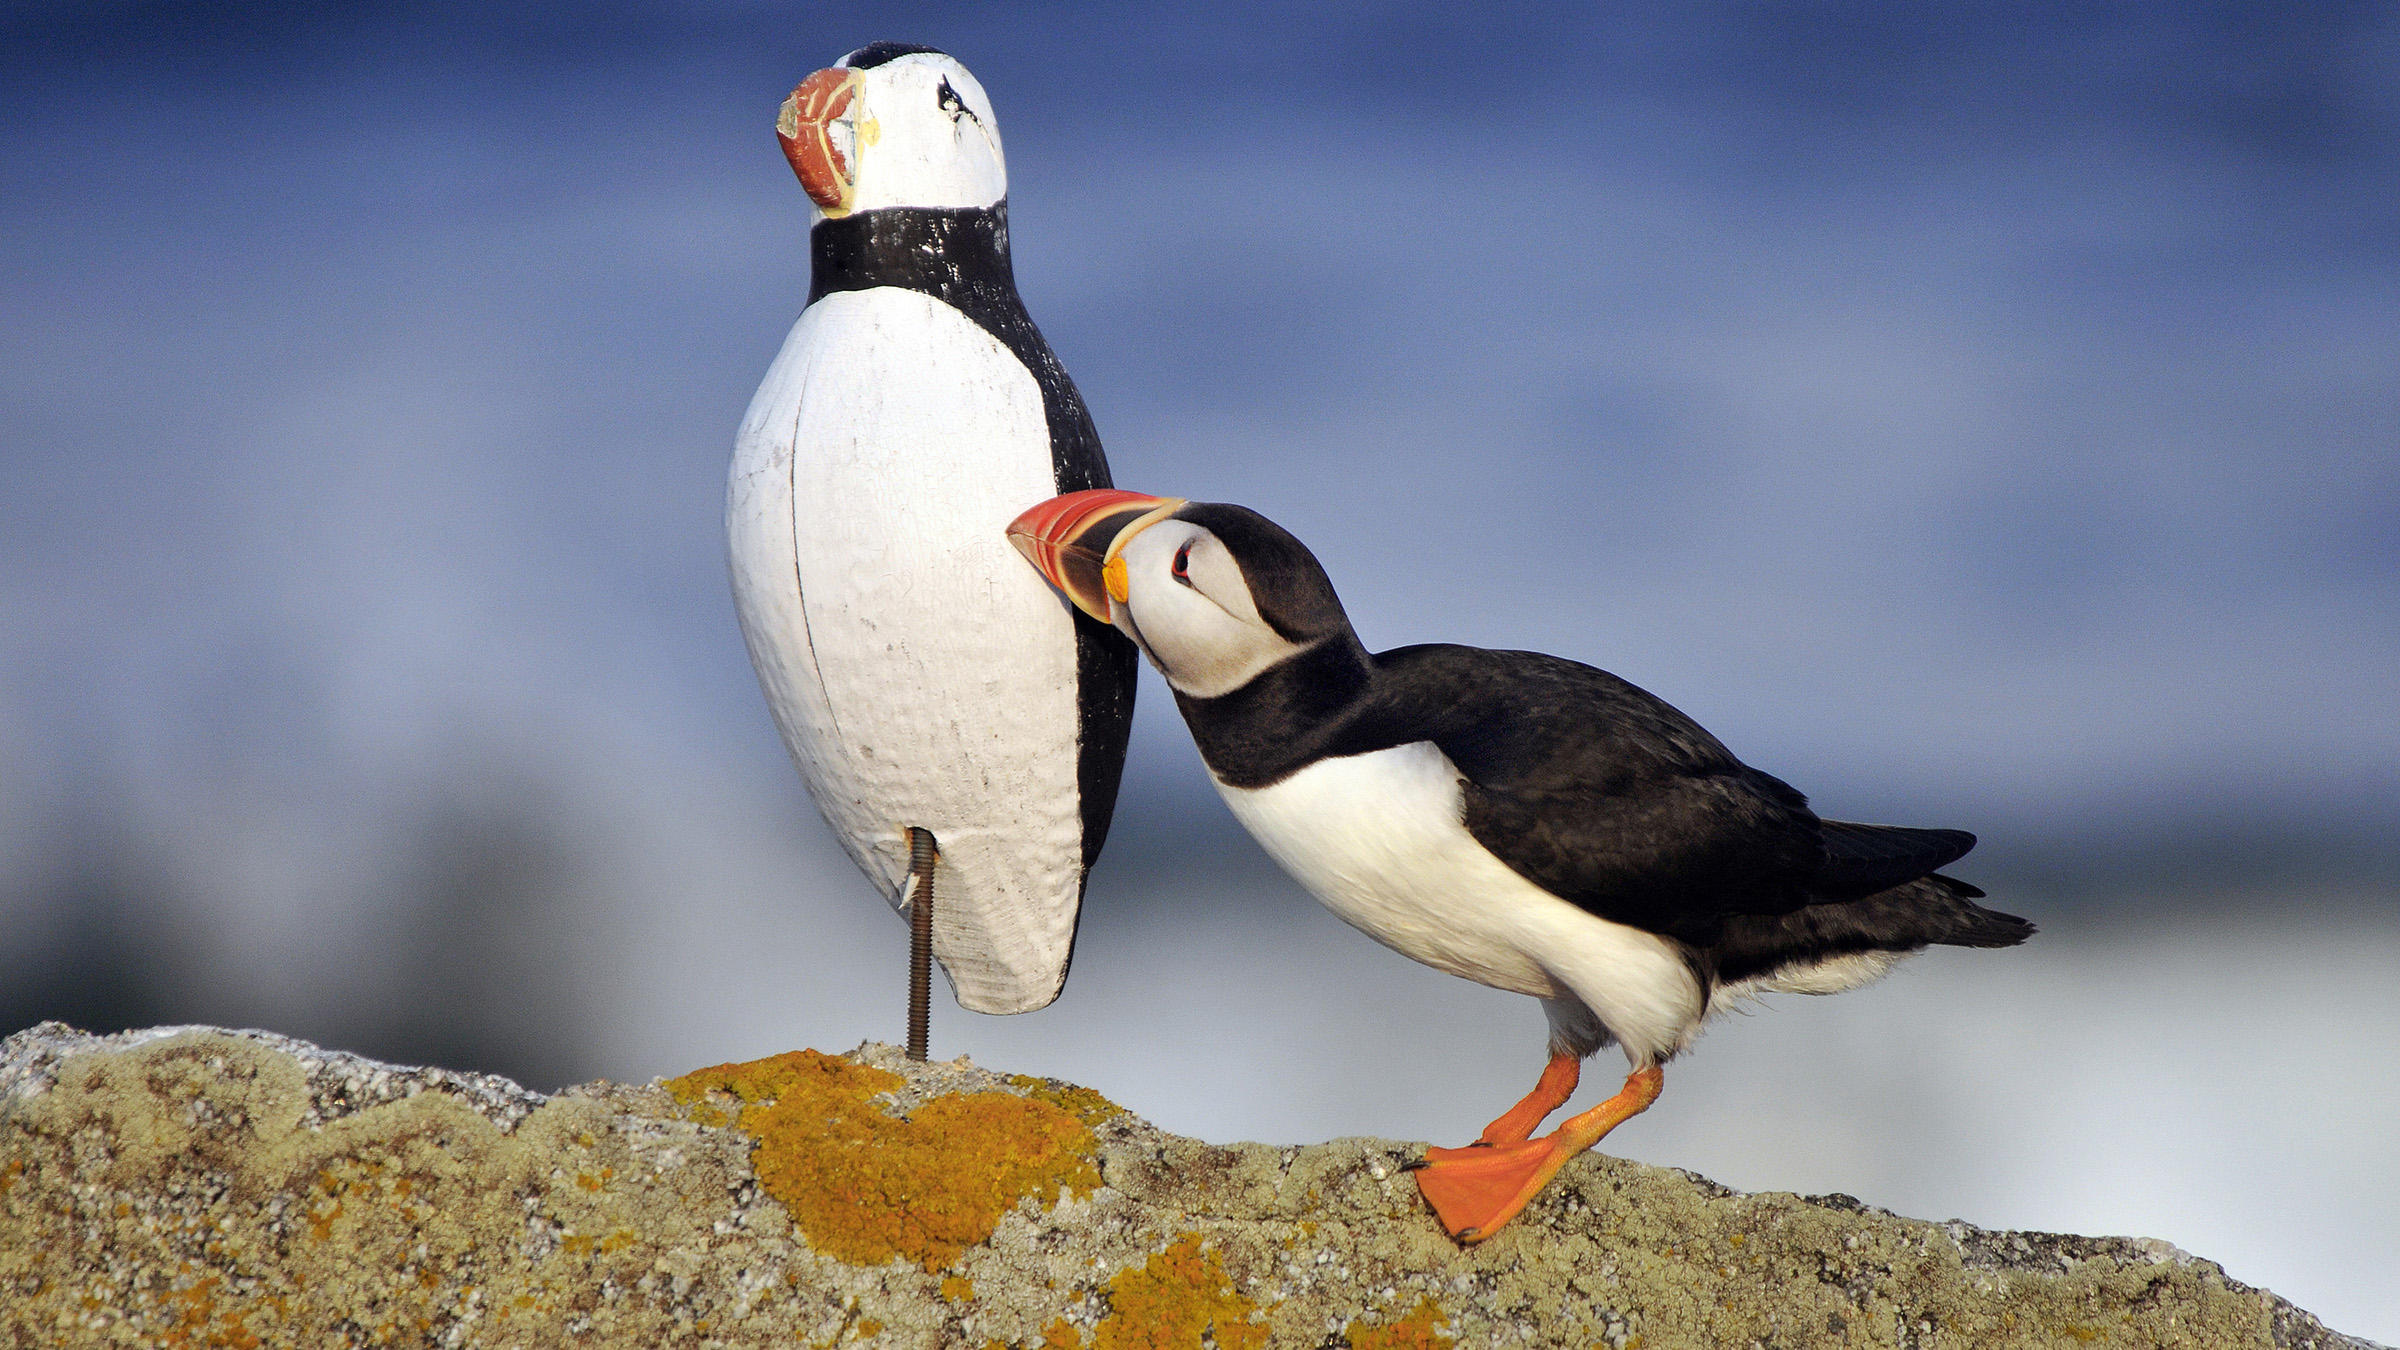 Puffin Backgrounds on Wallpapers Vista